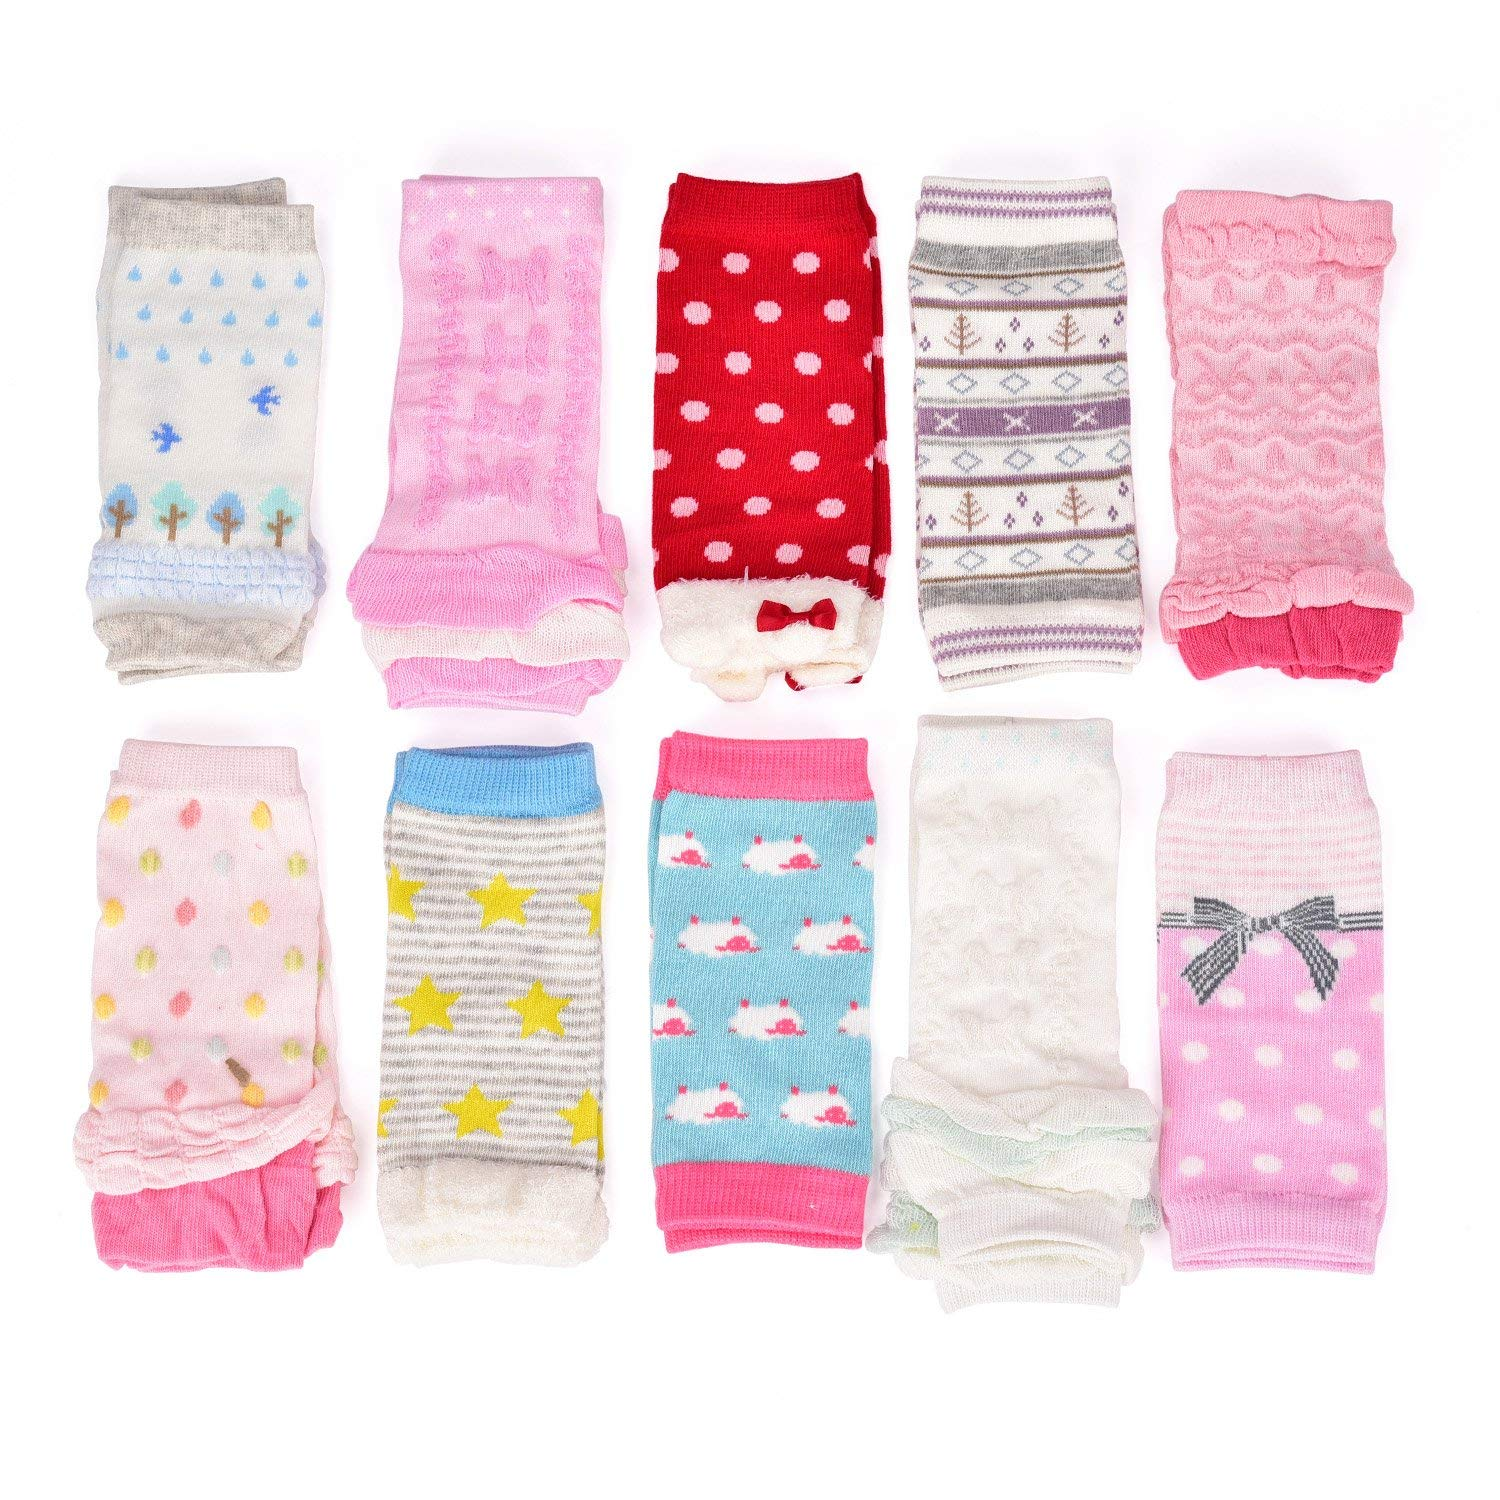 6 Pairs Toddler Boys Leg Warmers Baby Boy Leggings Knee Pads Size 0-6 Months 6-24 Months